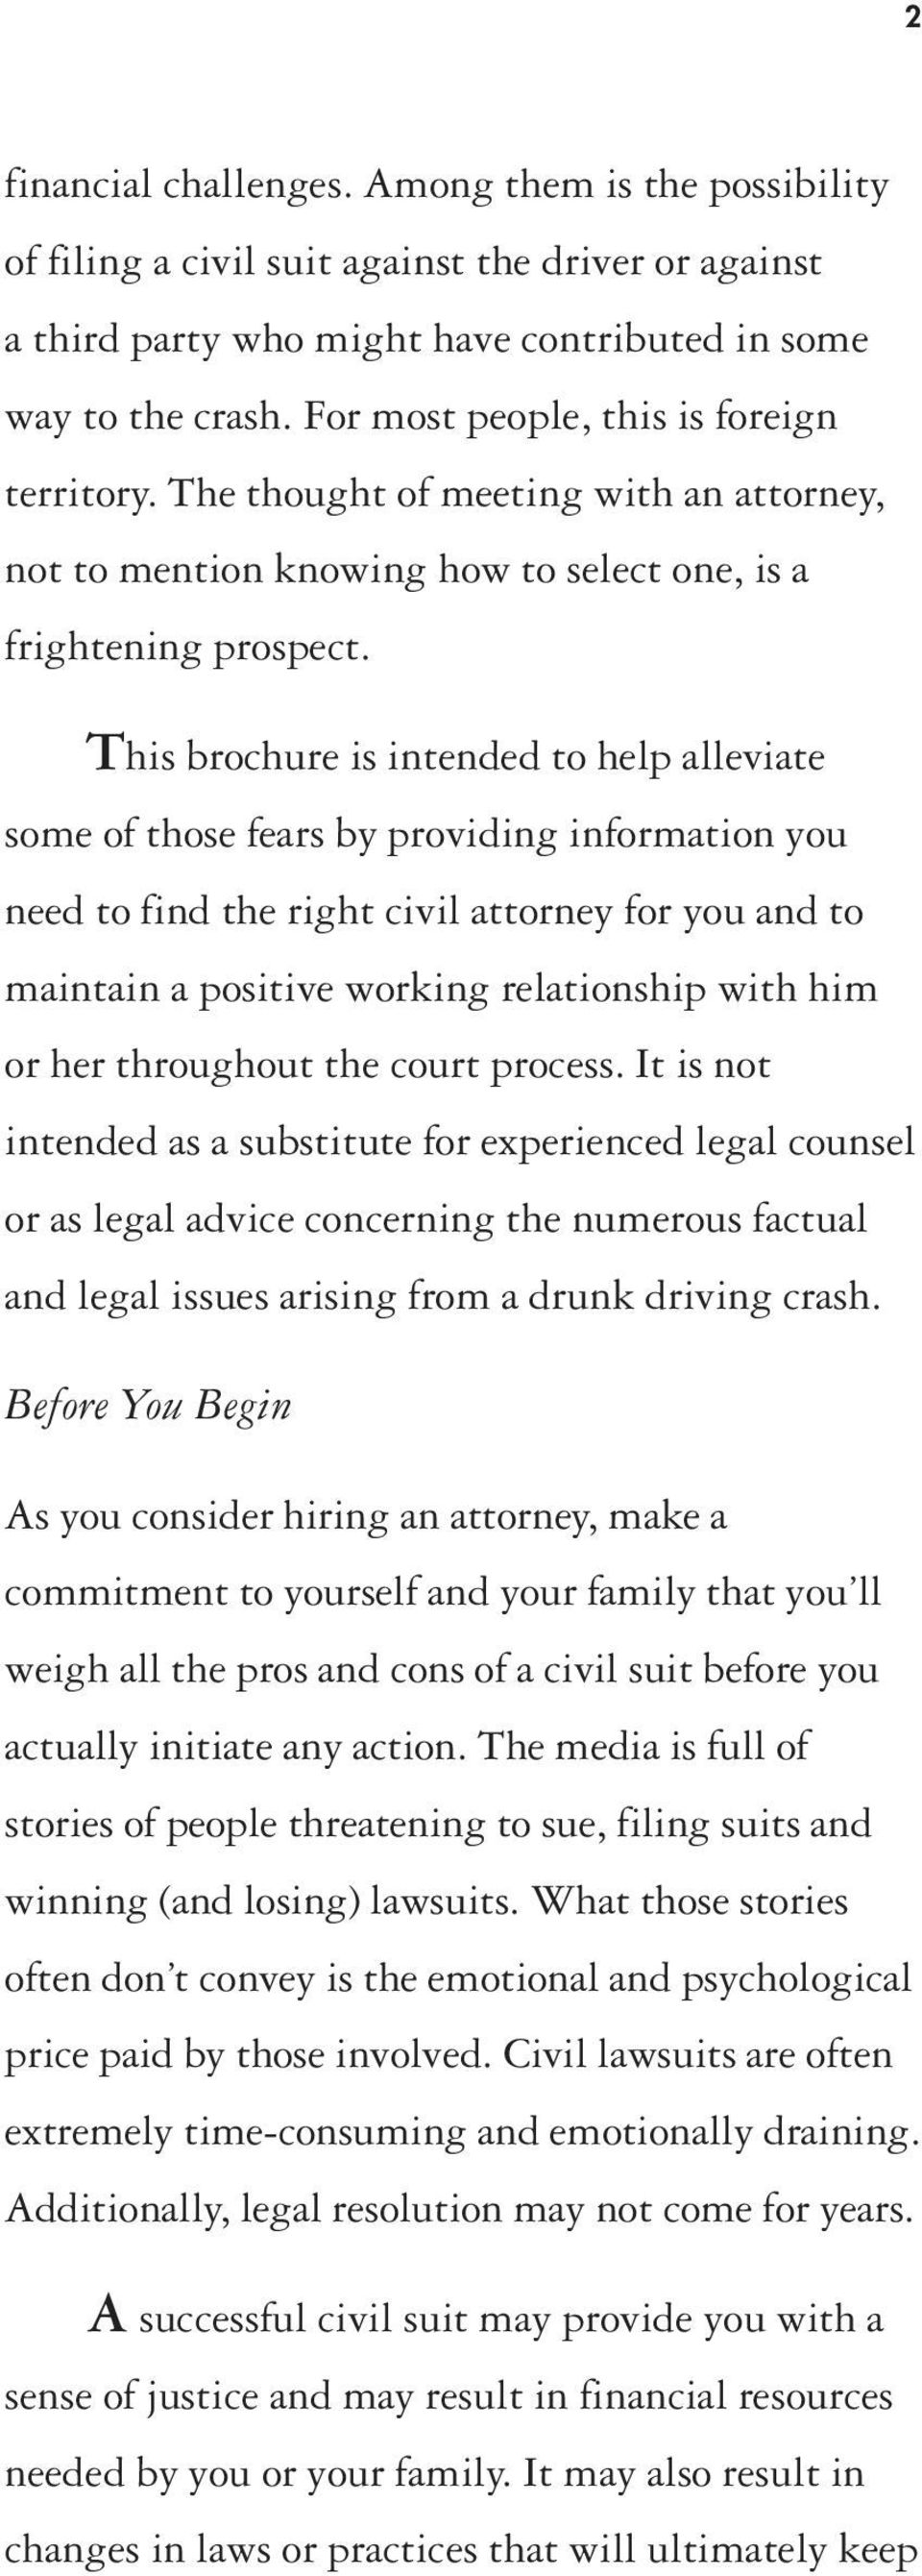 This brochure is intended to help alleviate some of those fears by providing information you need to find the right civil attorney for you and to maintain a positive working relationship with him or